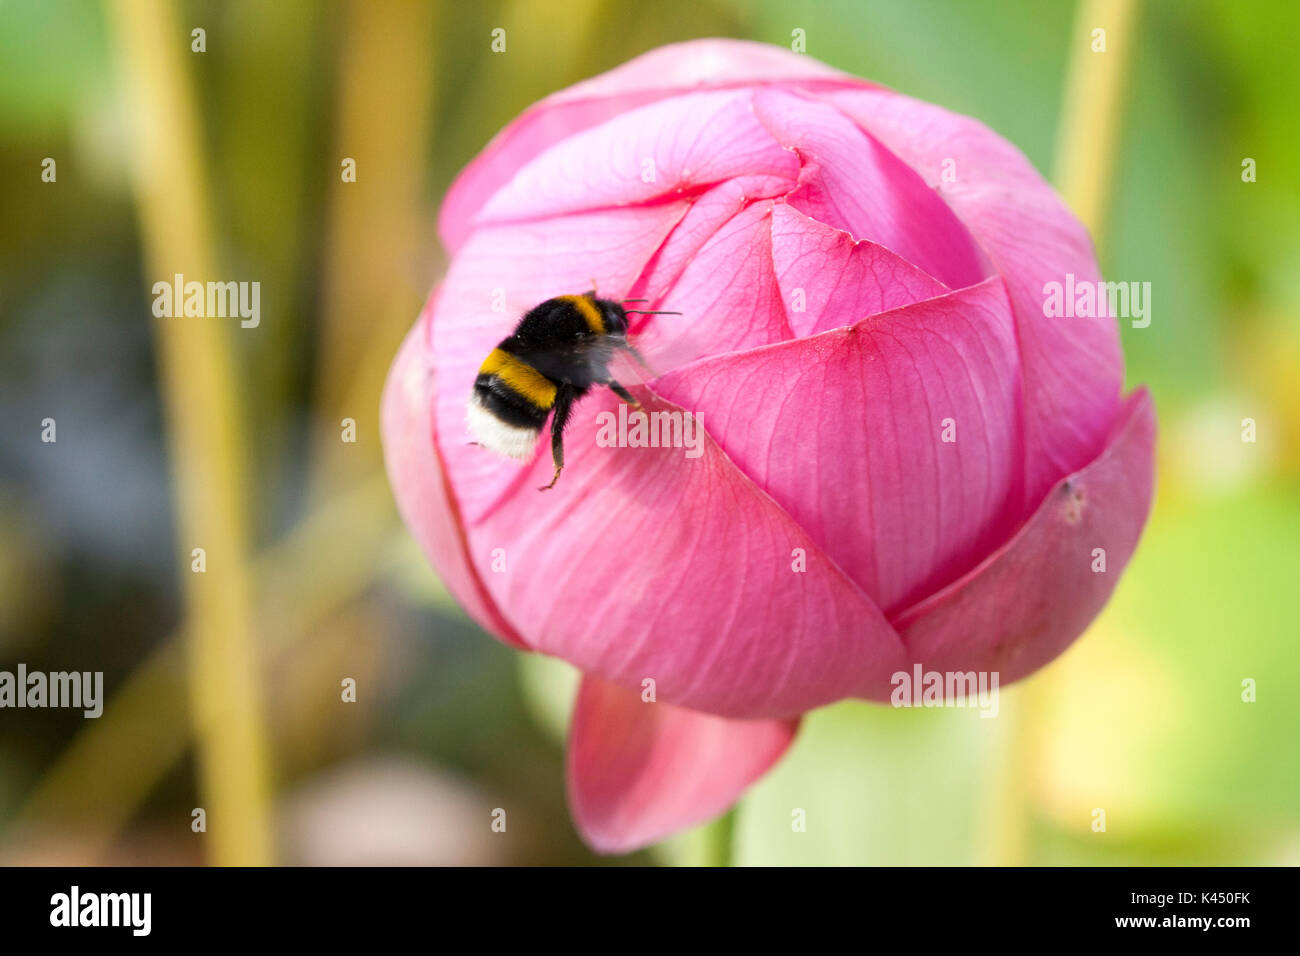 Bee on lotus flower bud stock photo 157462135 alamy bee on lotus flower bud izmirmasajfo